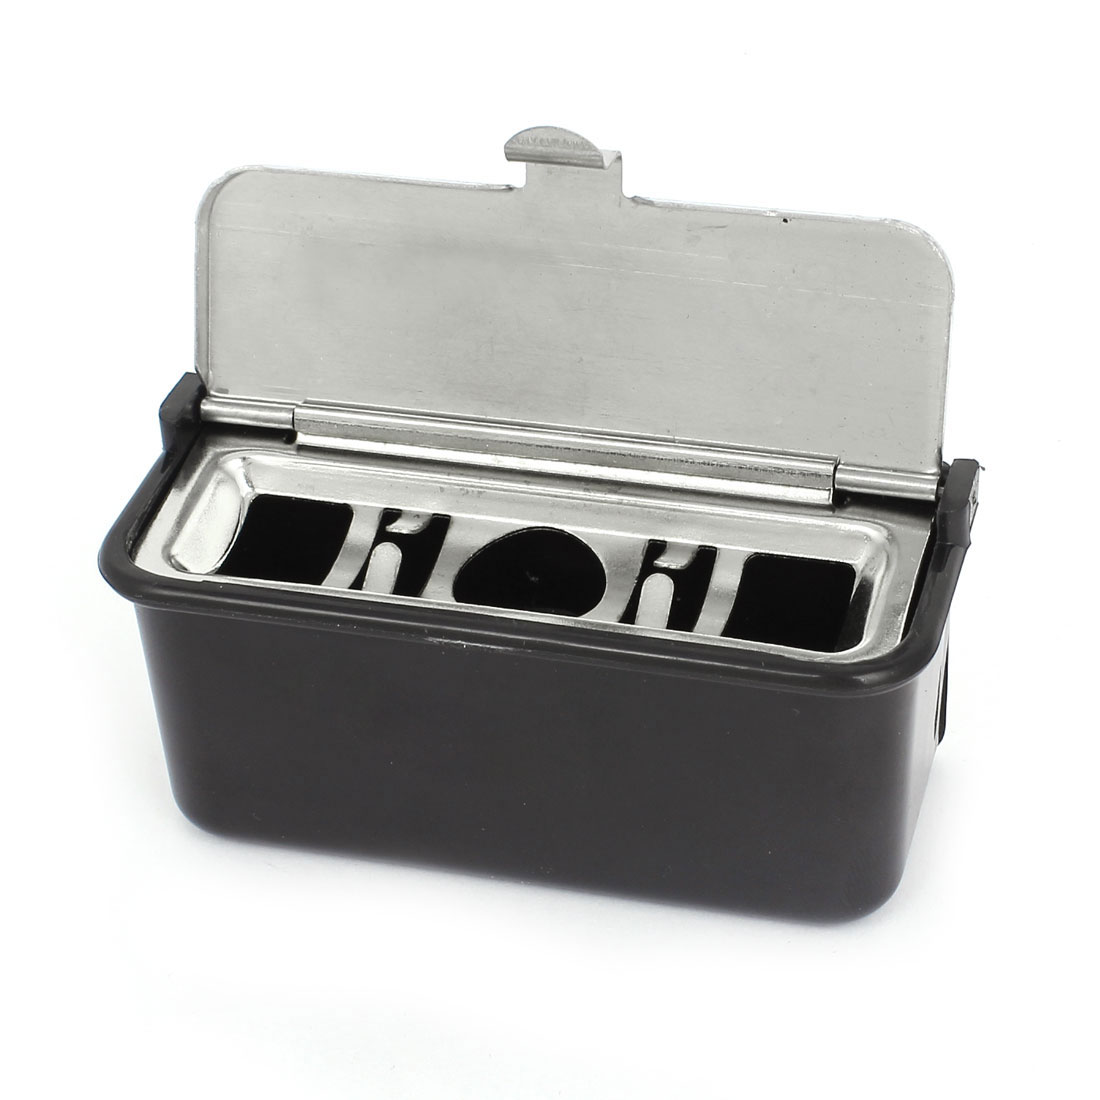 Black Silver Tone Portable Car Auto Travel Ashtray Cigarette Ash Holder Cup